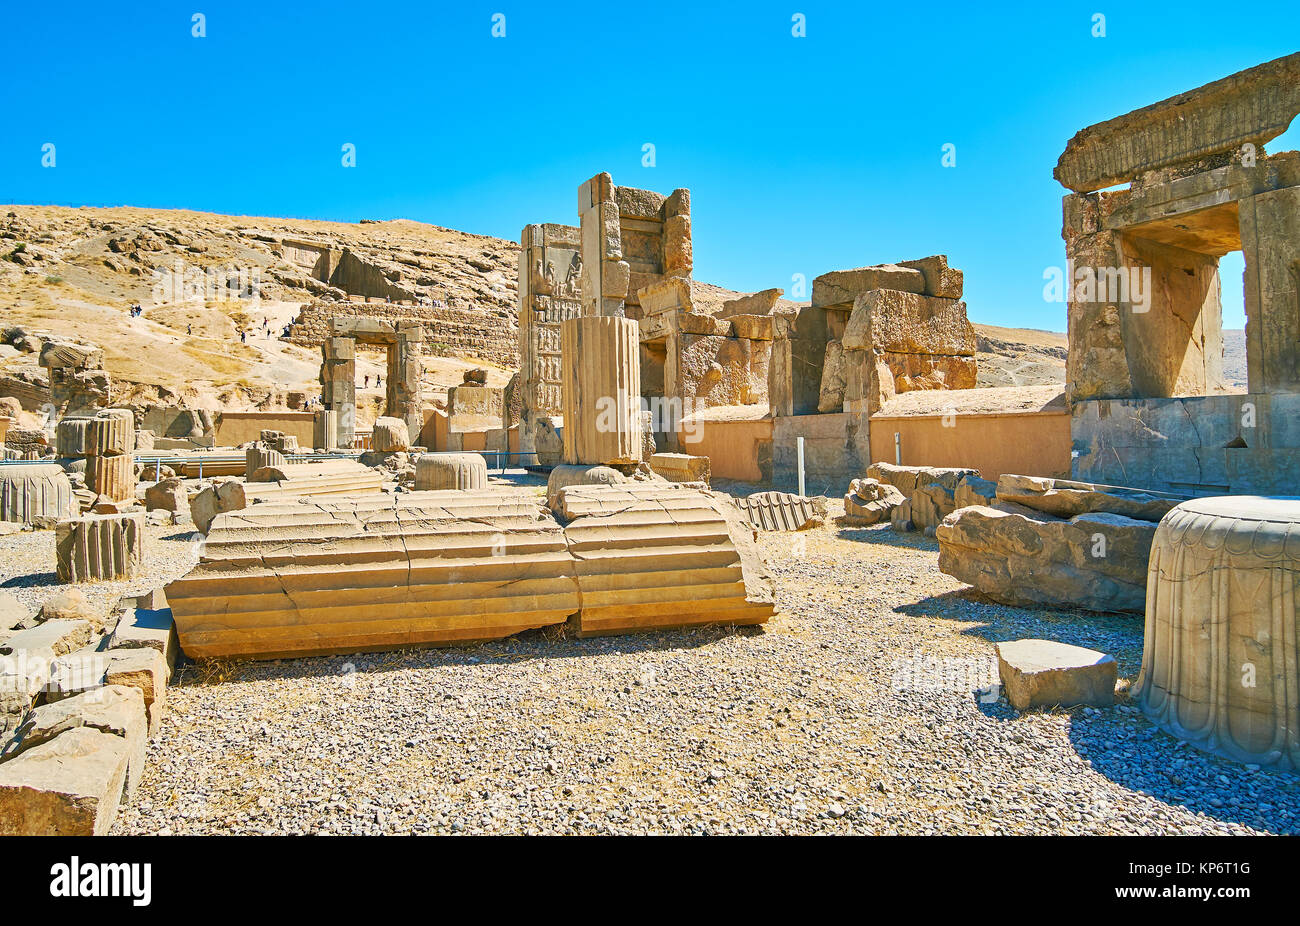 The ancient Persepolis is full of scenic destinations with interesting preserved objects, Iran. - Stock Image